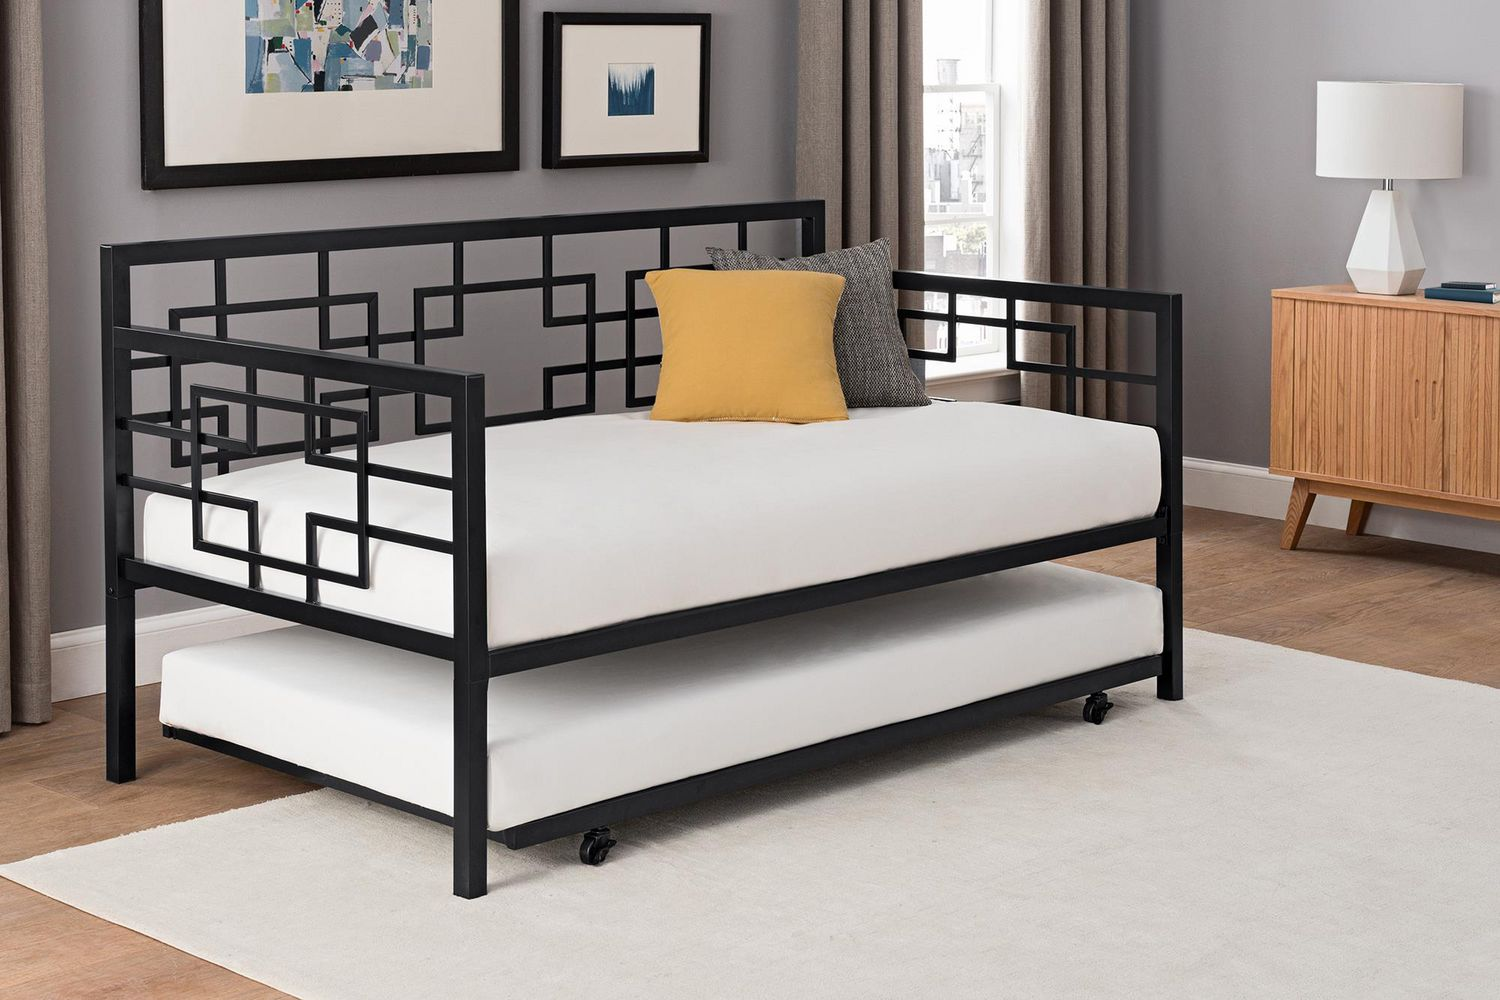 DHP Twin Daybed With Trundle, Black Metal